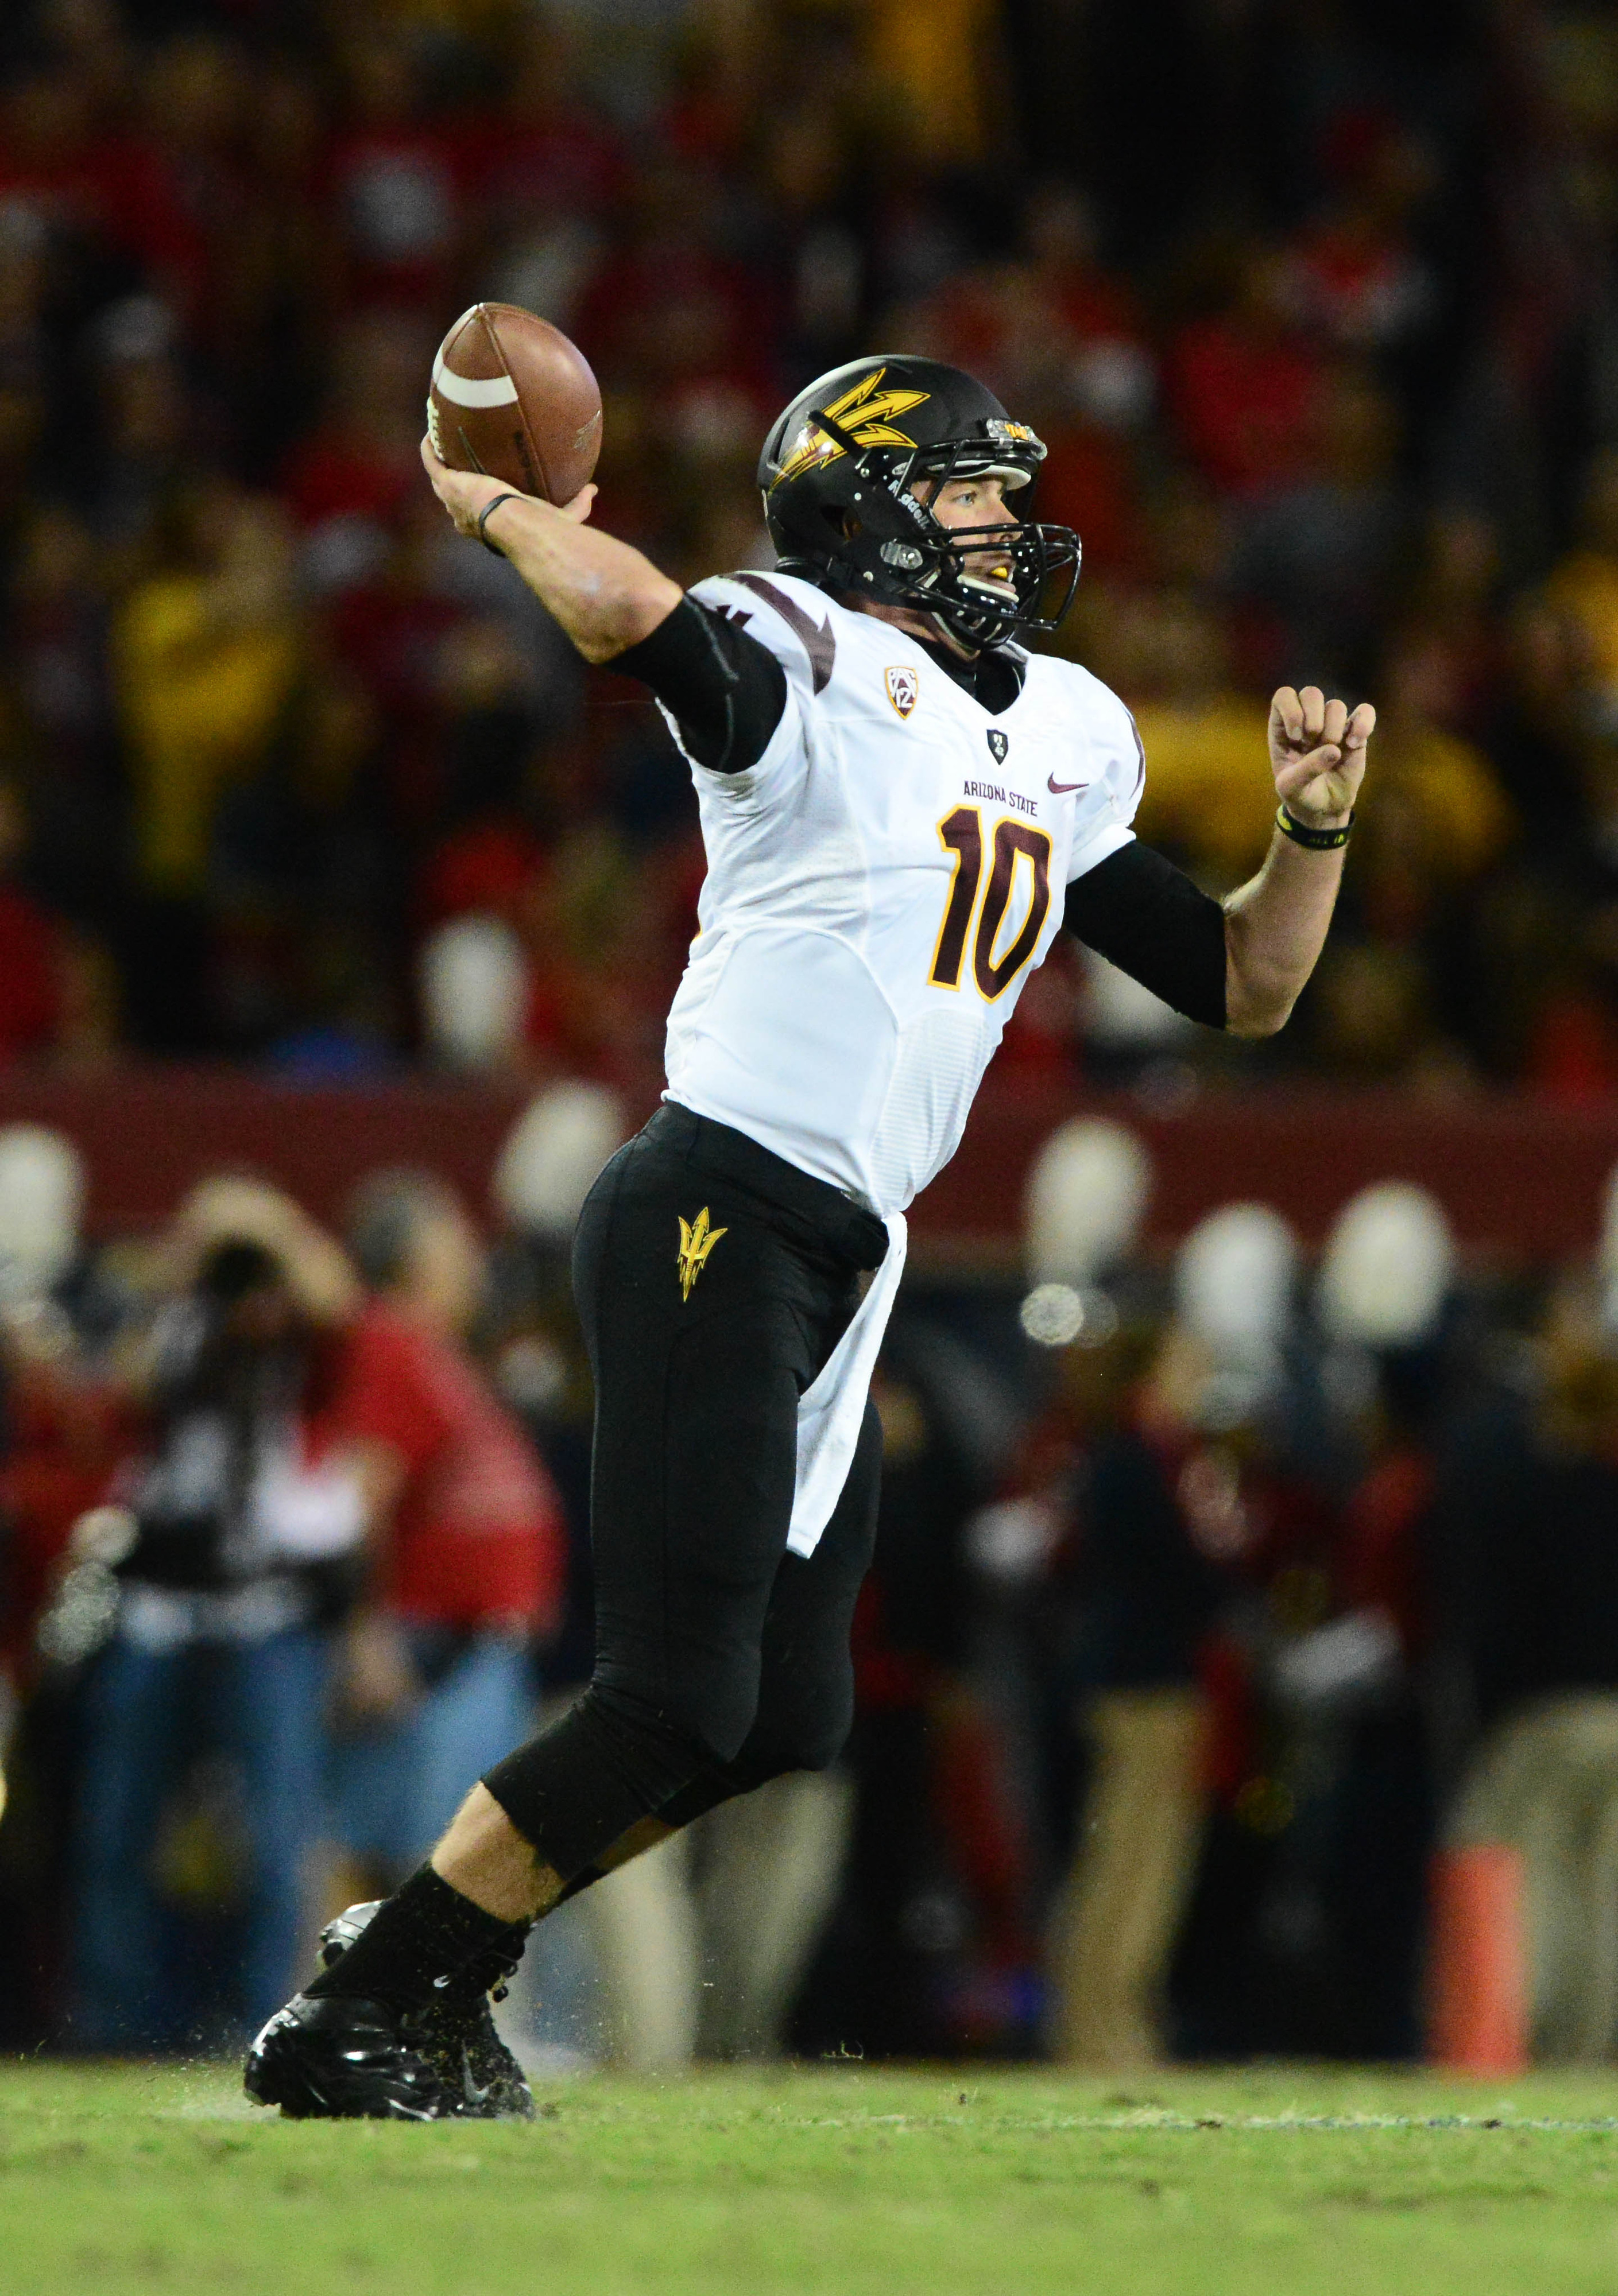 Taylor Kelly enters spring practices as the returning starter for the Sun Devils.